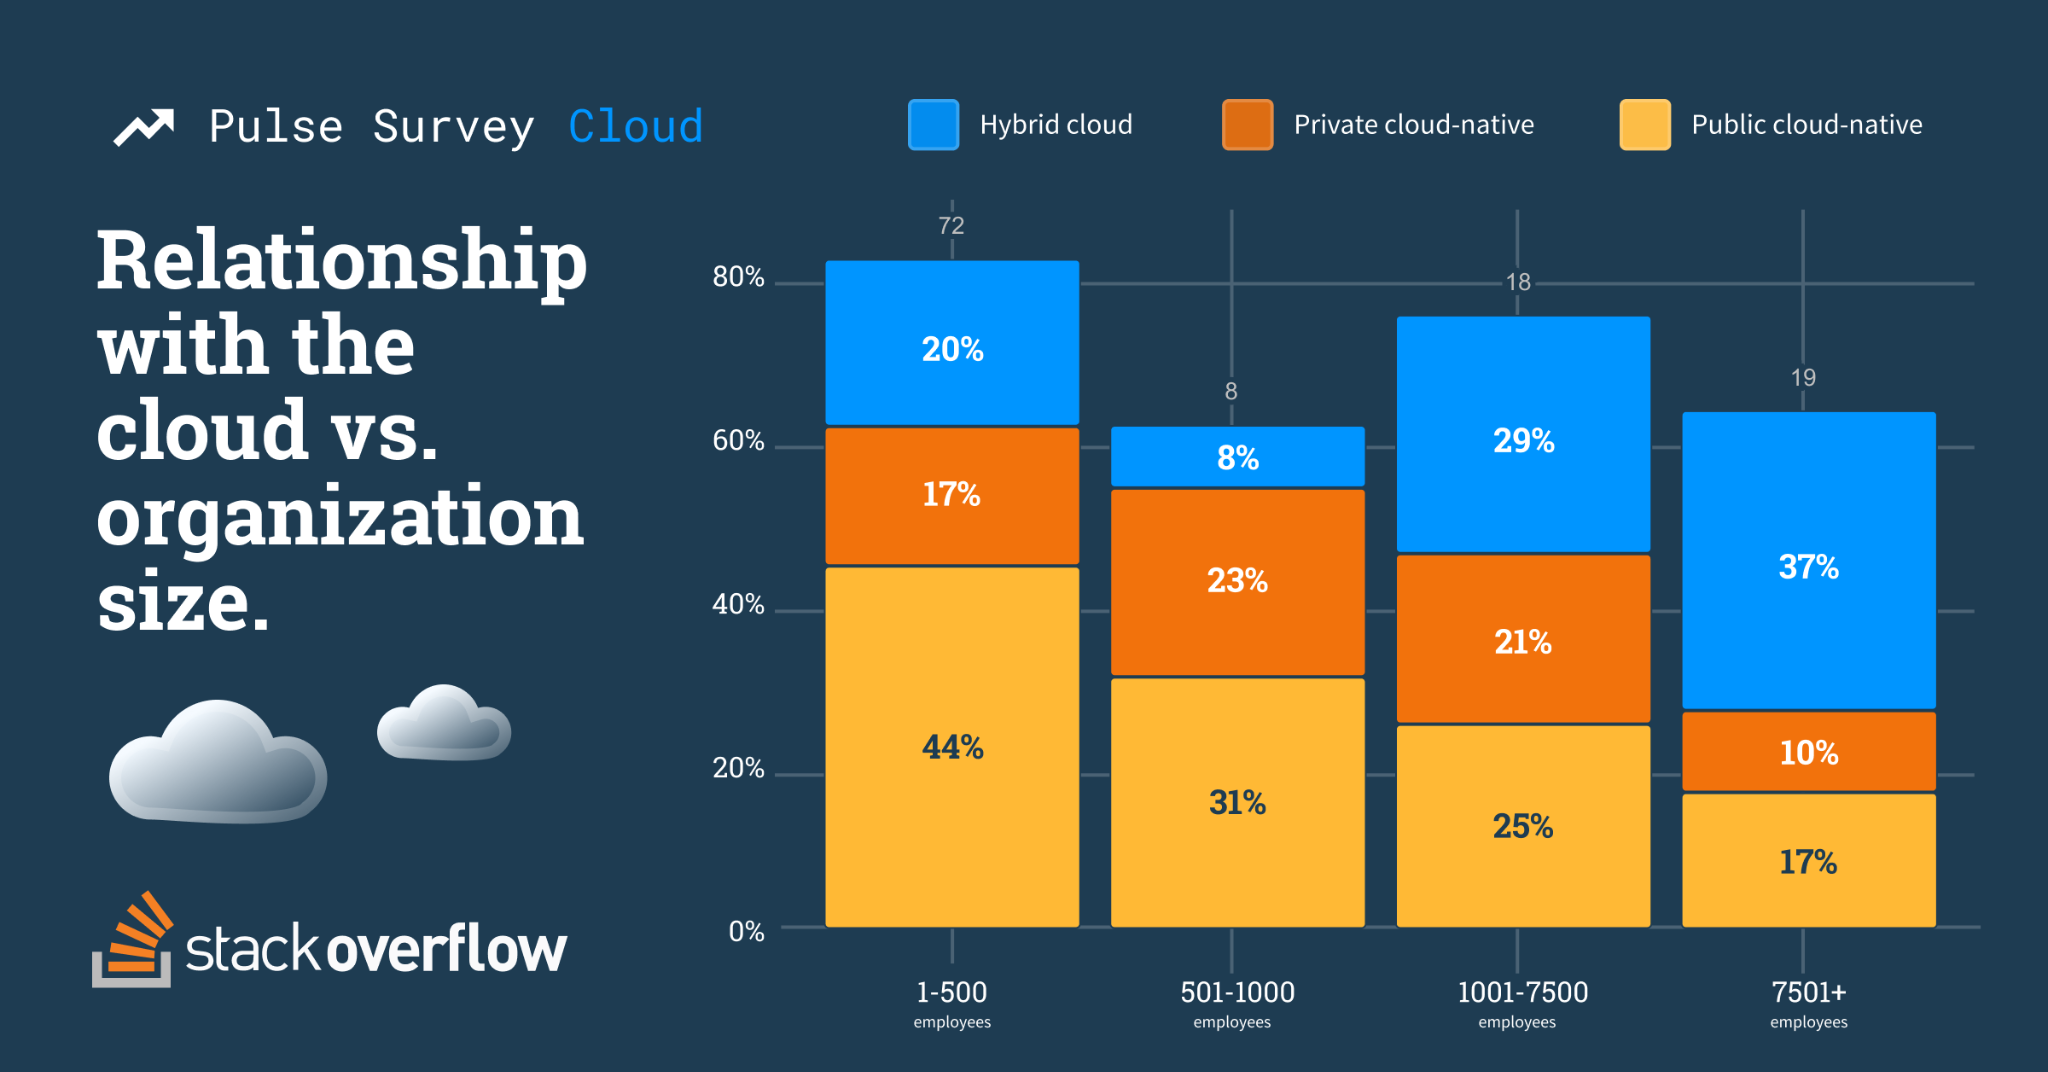 Stacked bar chart showing organization size and relationship with the cloud. 1-500 employee organizations, 72 respondents, 44% public cloud-native, 17% private cloud-native, 20% hybrid cloud. 501-500 employee organization, 8 respondents, 31% public cloud-native, 23% private cloud-native, 8% hybrid cloud. 1001-7500 employee organizations, 18 respondents, 25% public cloud-native, 21% private cloud-native, 29% hybrid cloud. 7501+ employee organizations, 19 respondents, 17% public cloud-native, 10% private cloud-native, 37% hybrid cloud.